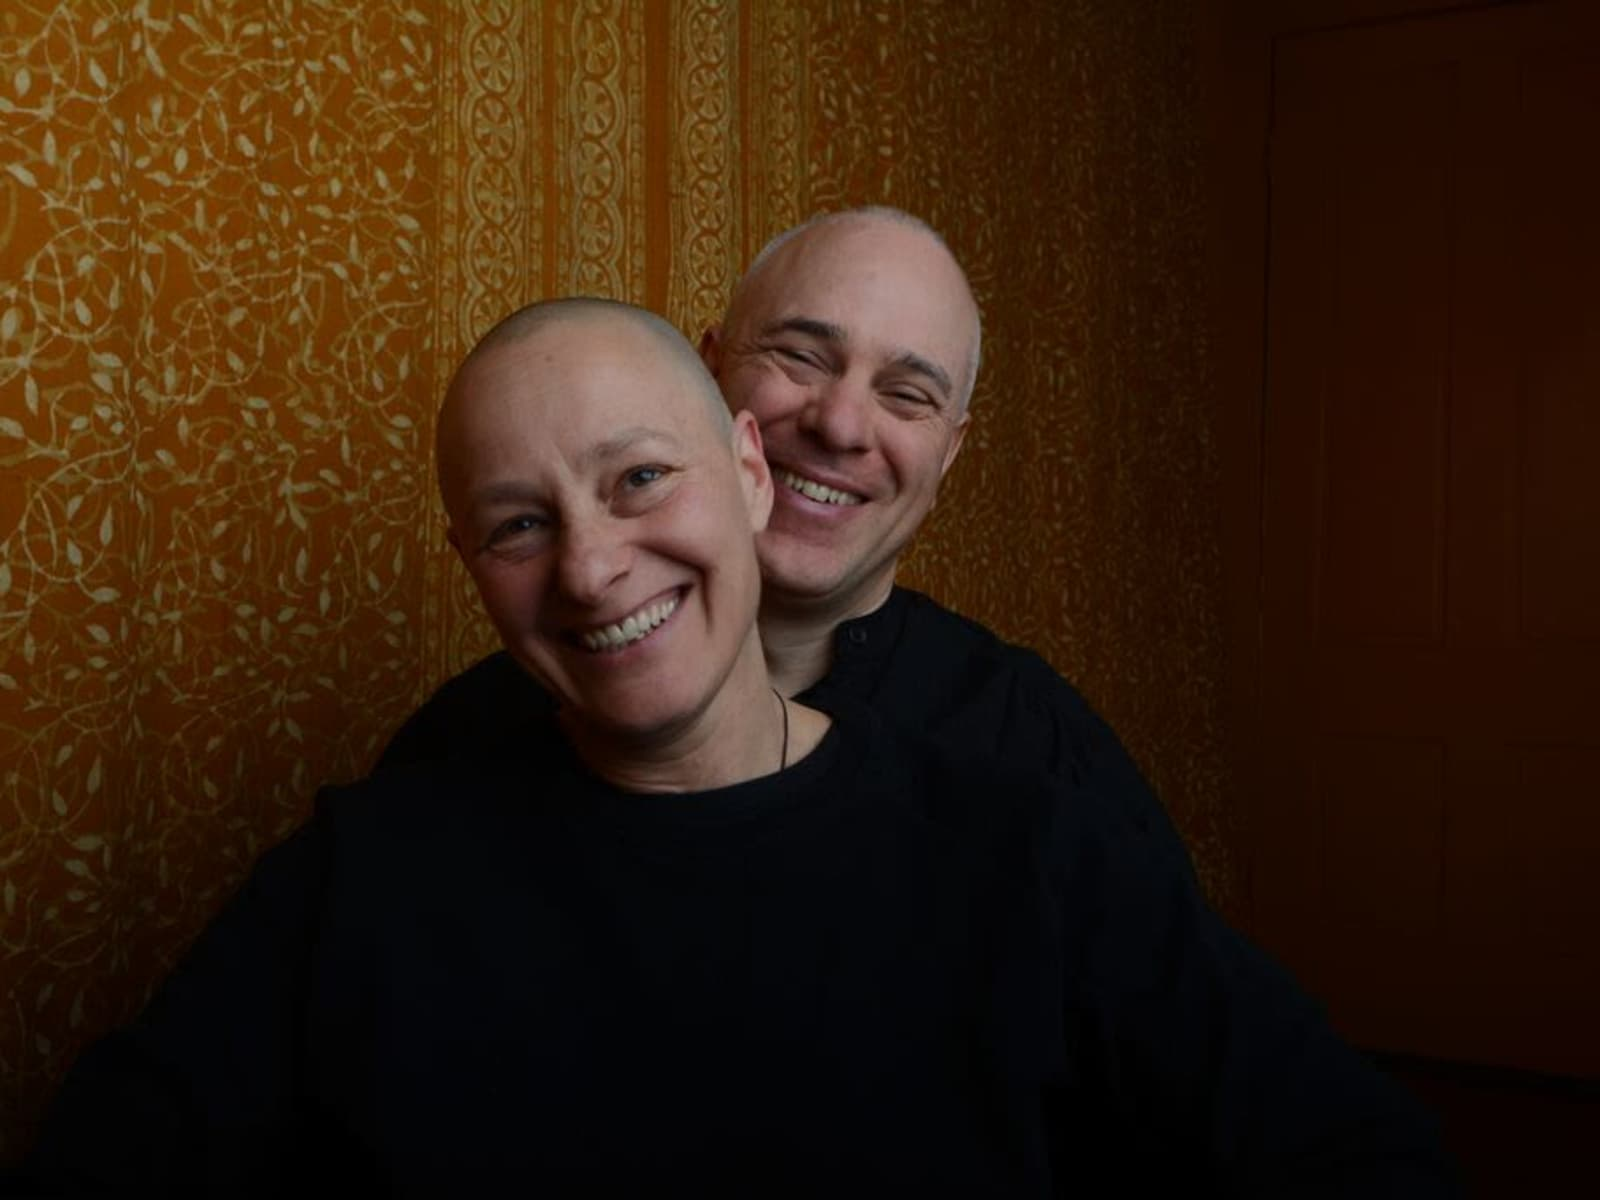 Monique & Blane from Valongo do Farrio, Portugal